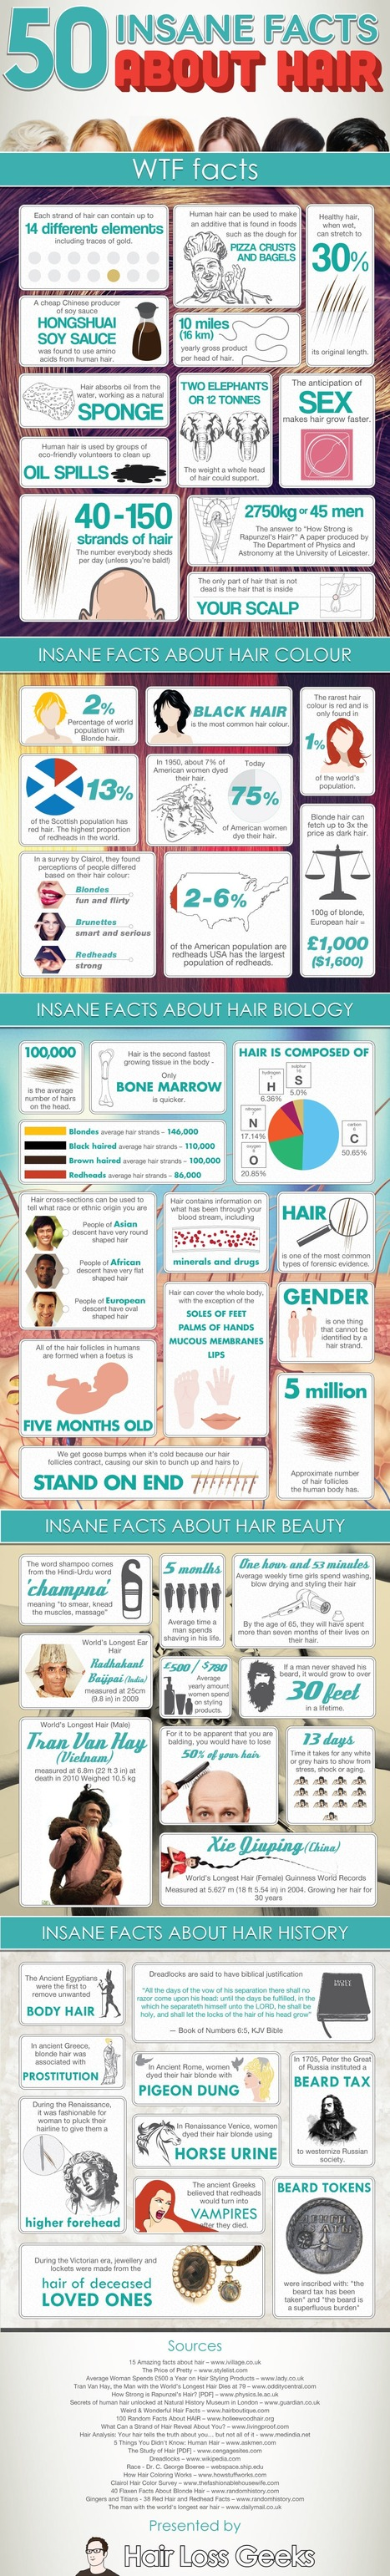 50 Insane Facts About Hair {Infographic} - WomanlyWoman.com | Infograpic | Scoop.it